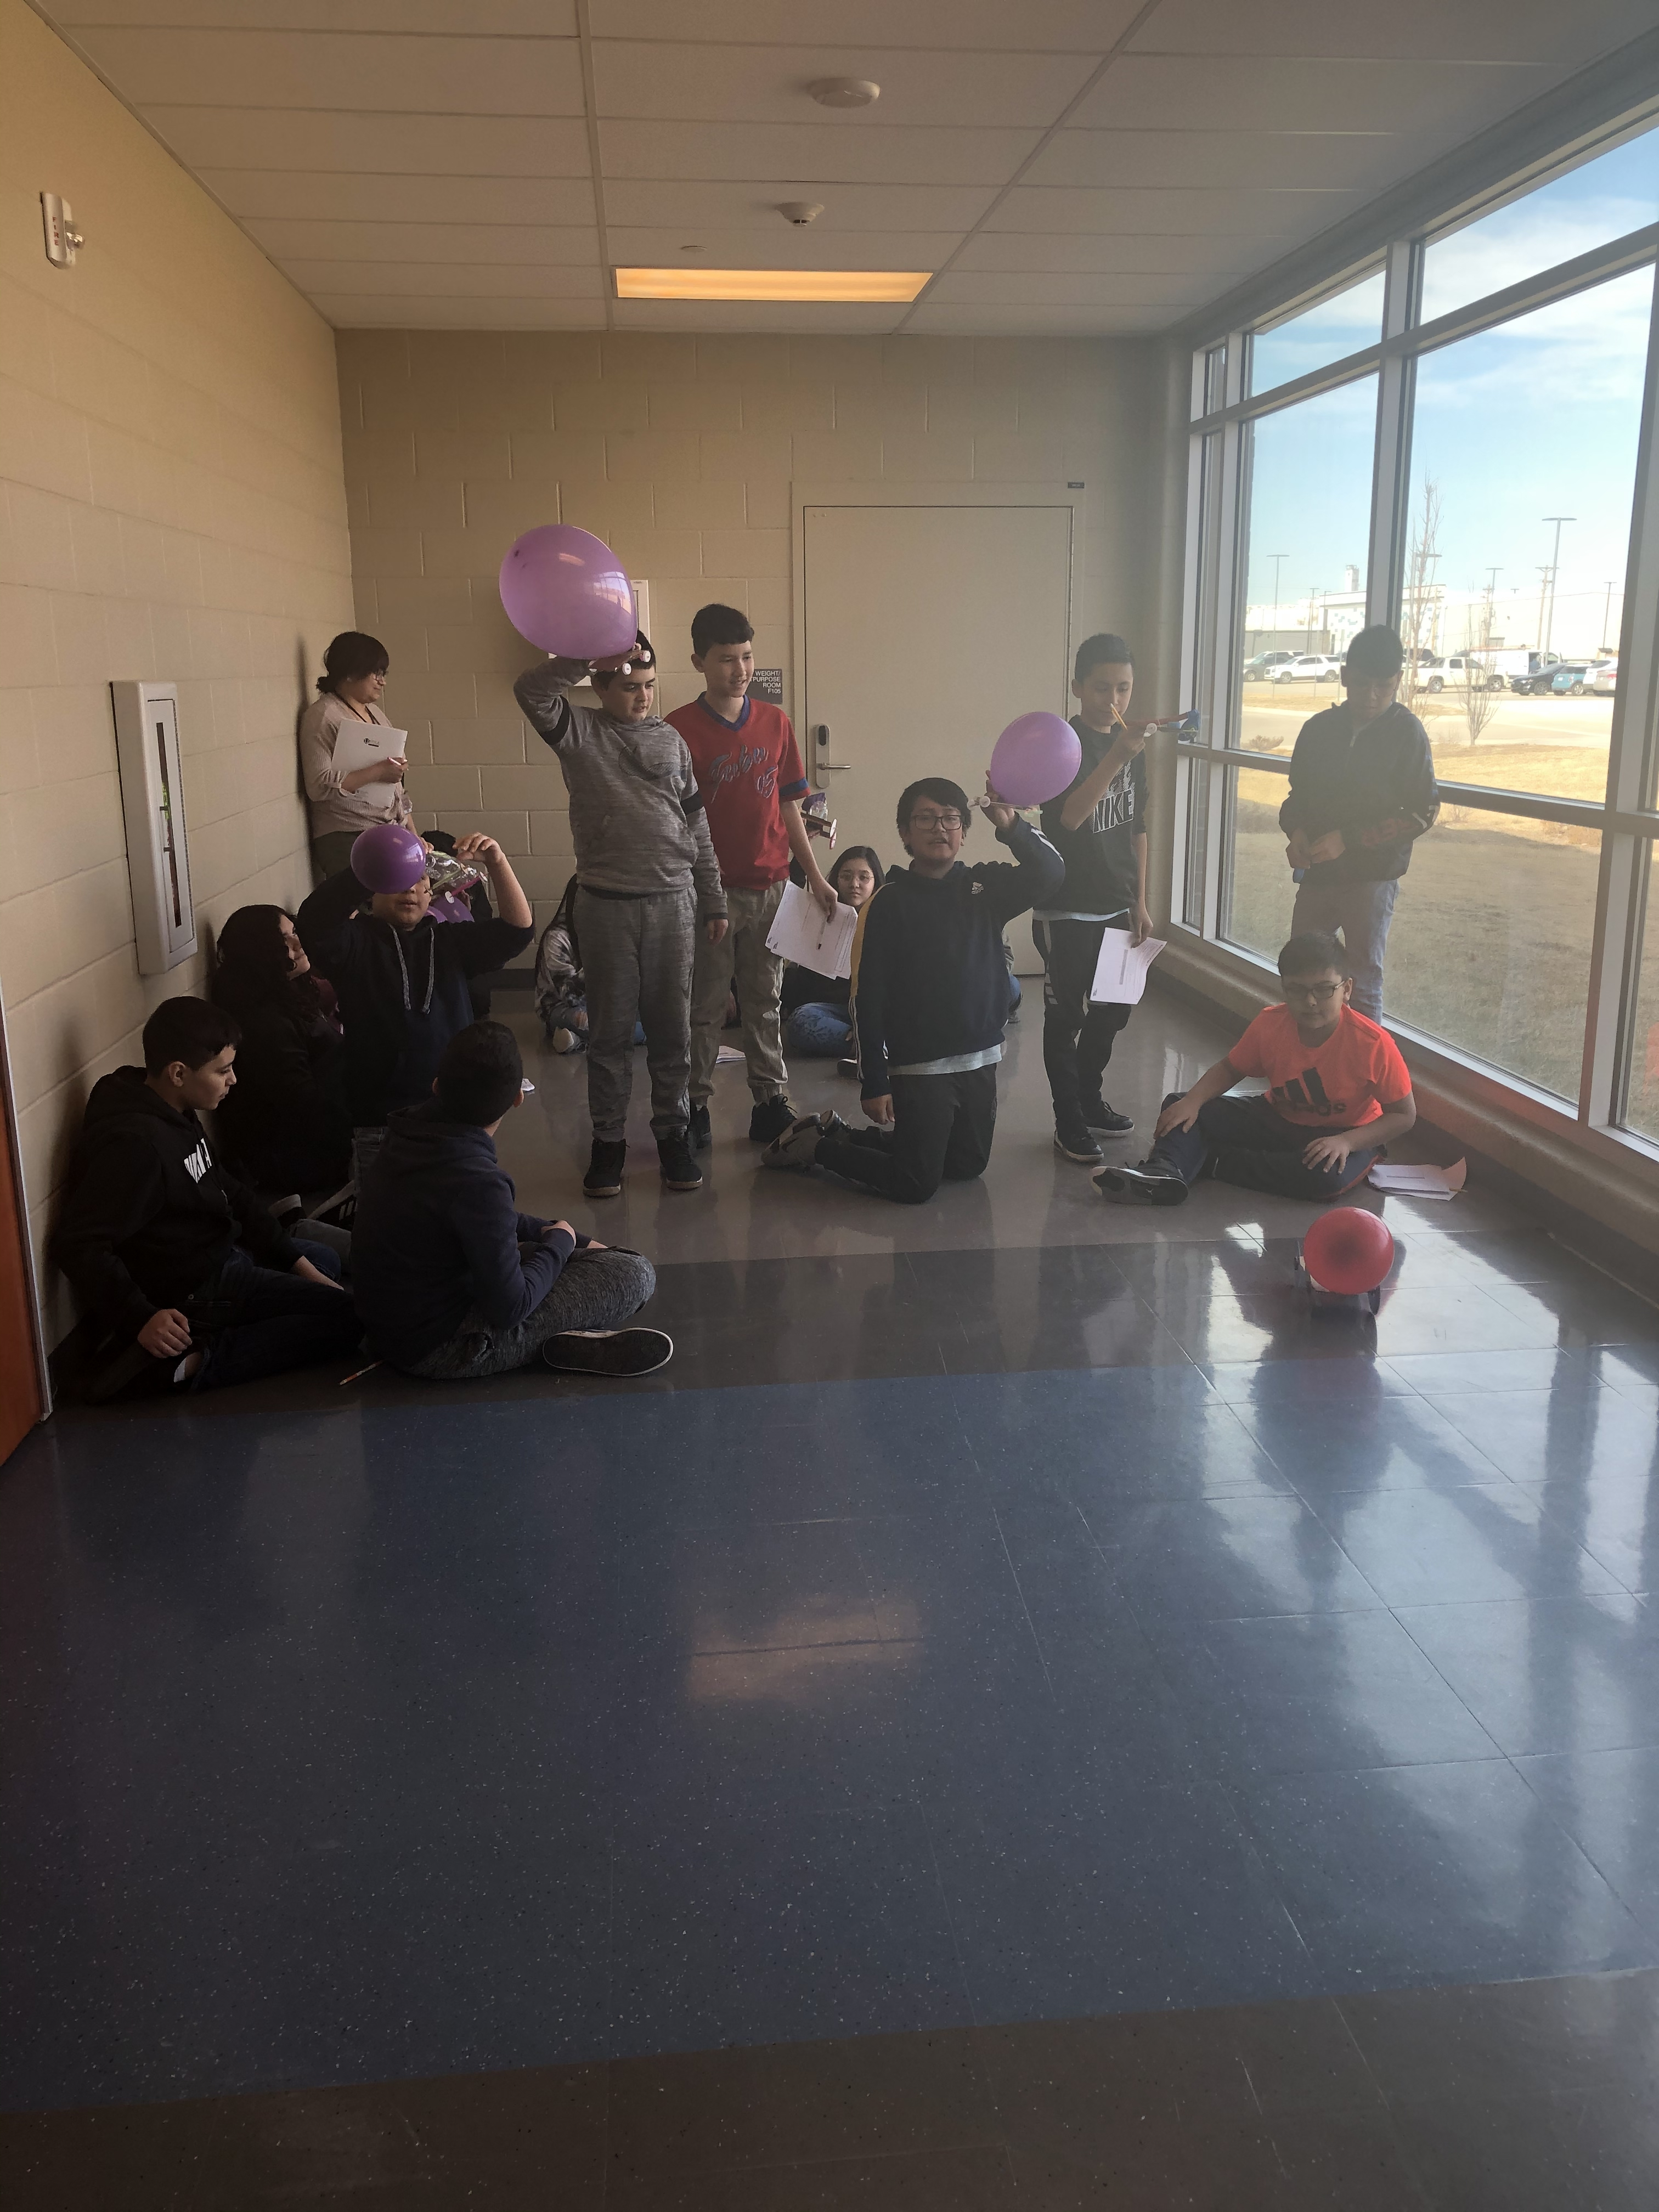 Mr Calleja's Science class Ballon cars to work on motion and forces